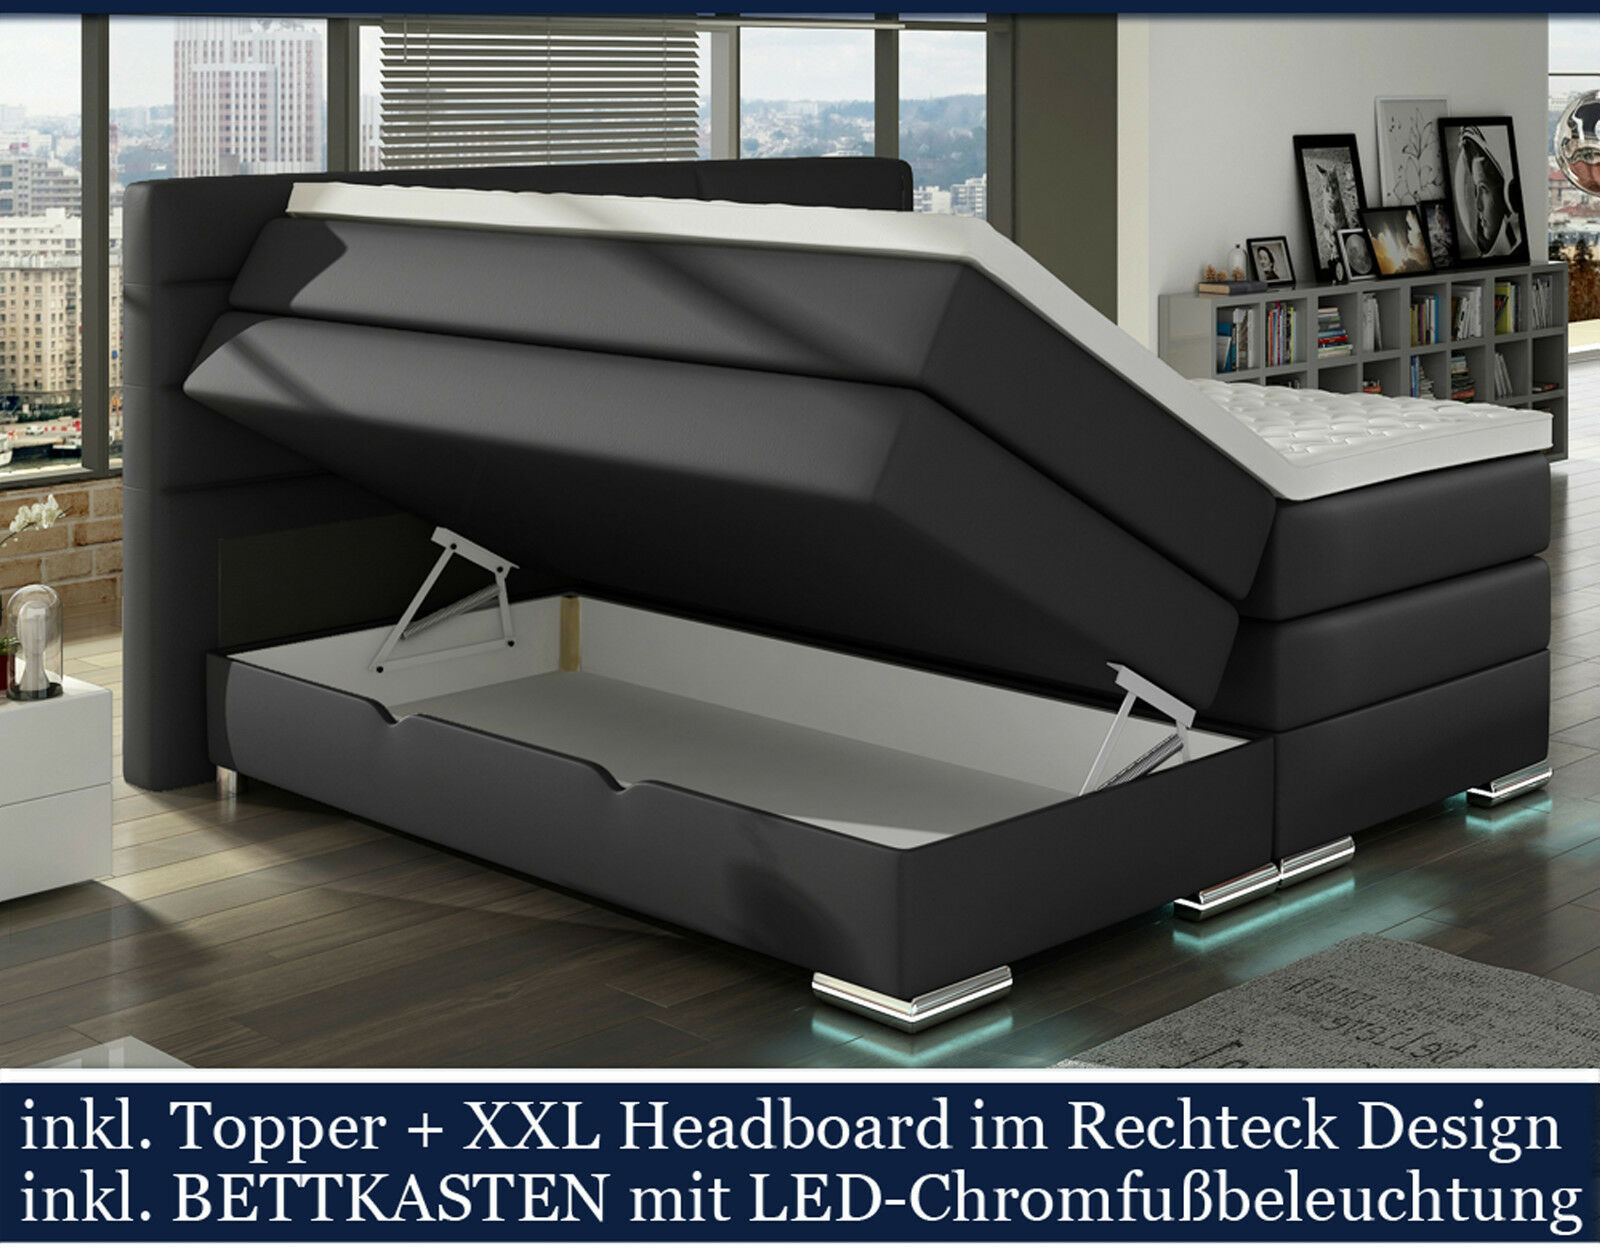 xxl boxspringbett mit bettkasten boxspring bett schwarz led 200x200 eur picclick it. Black Bedroom Furniture Sets. Home Design Ideas